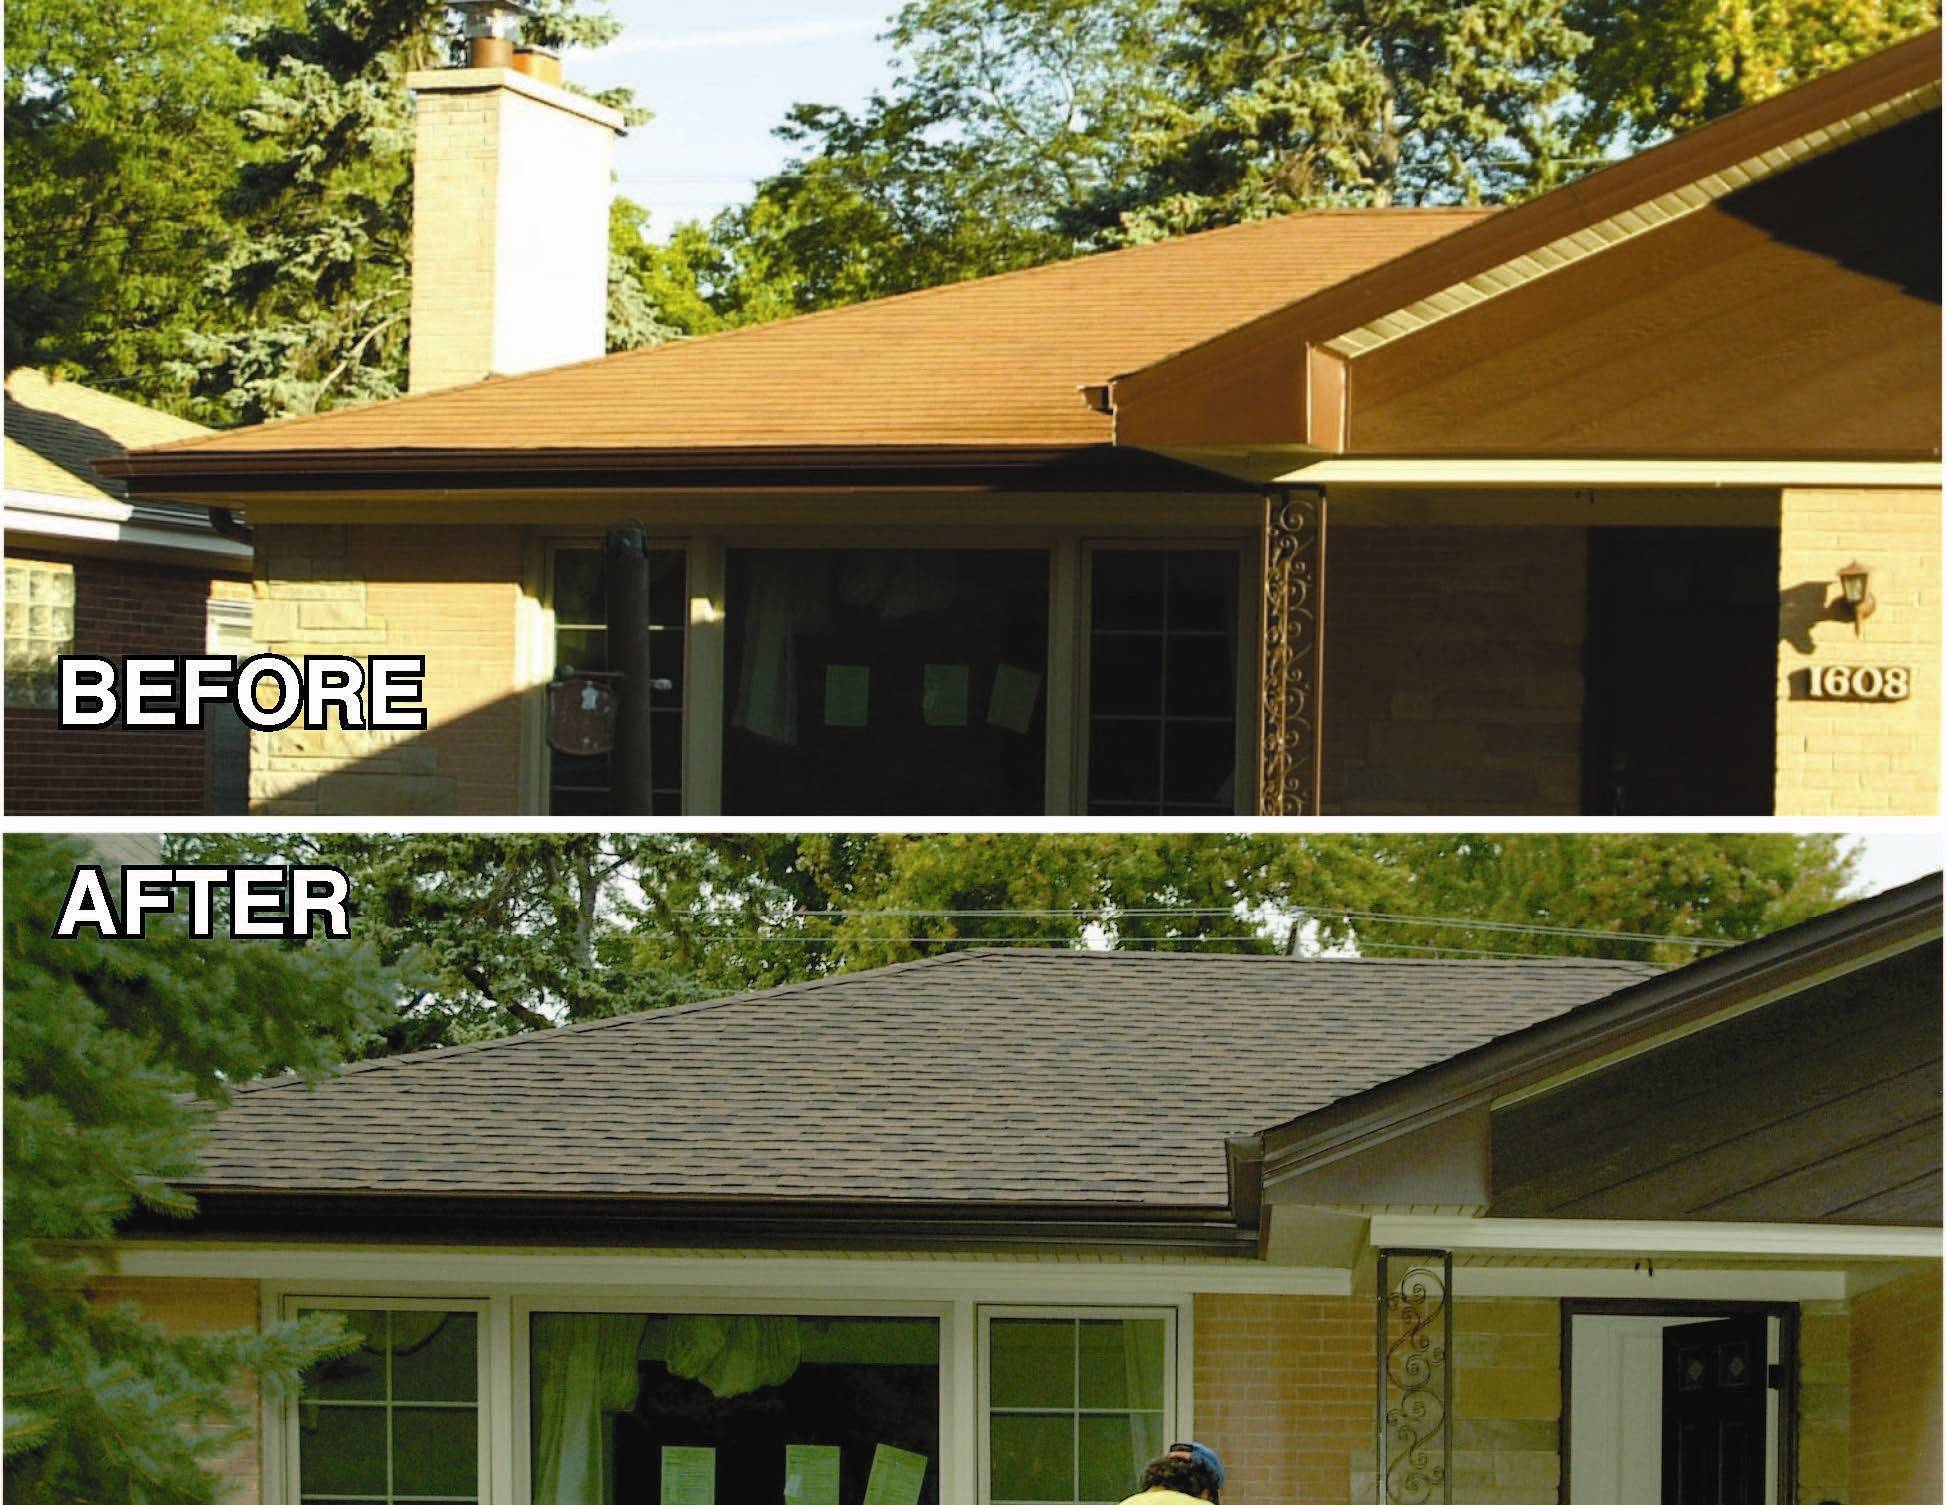 Consider a lighter color shingle to save on energy costs.